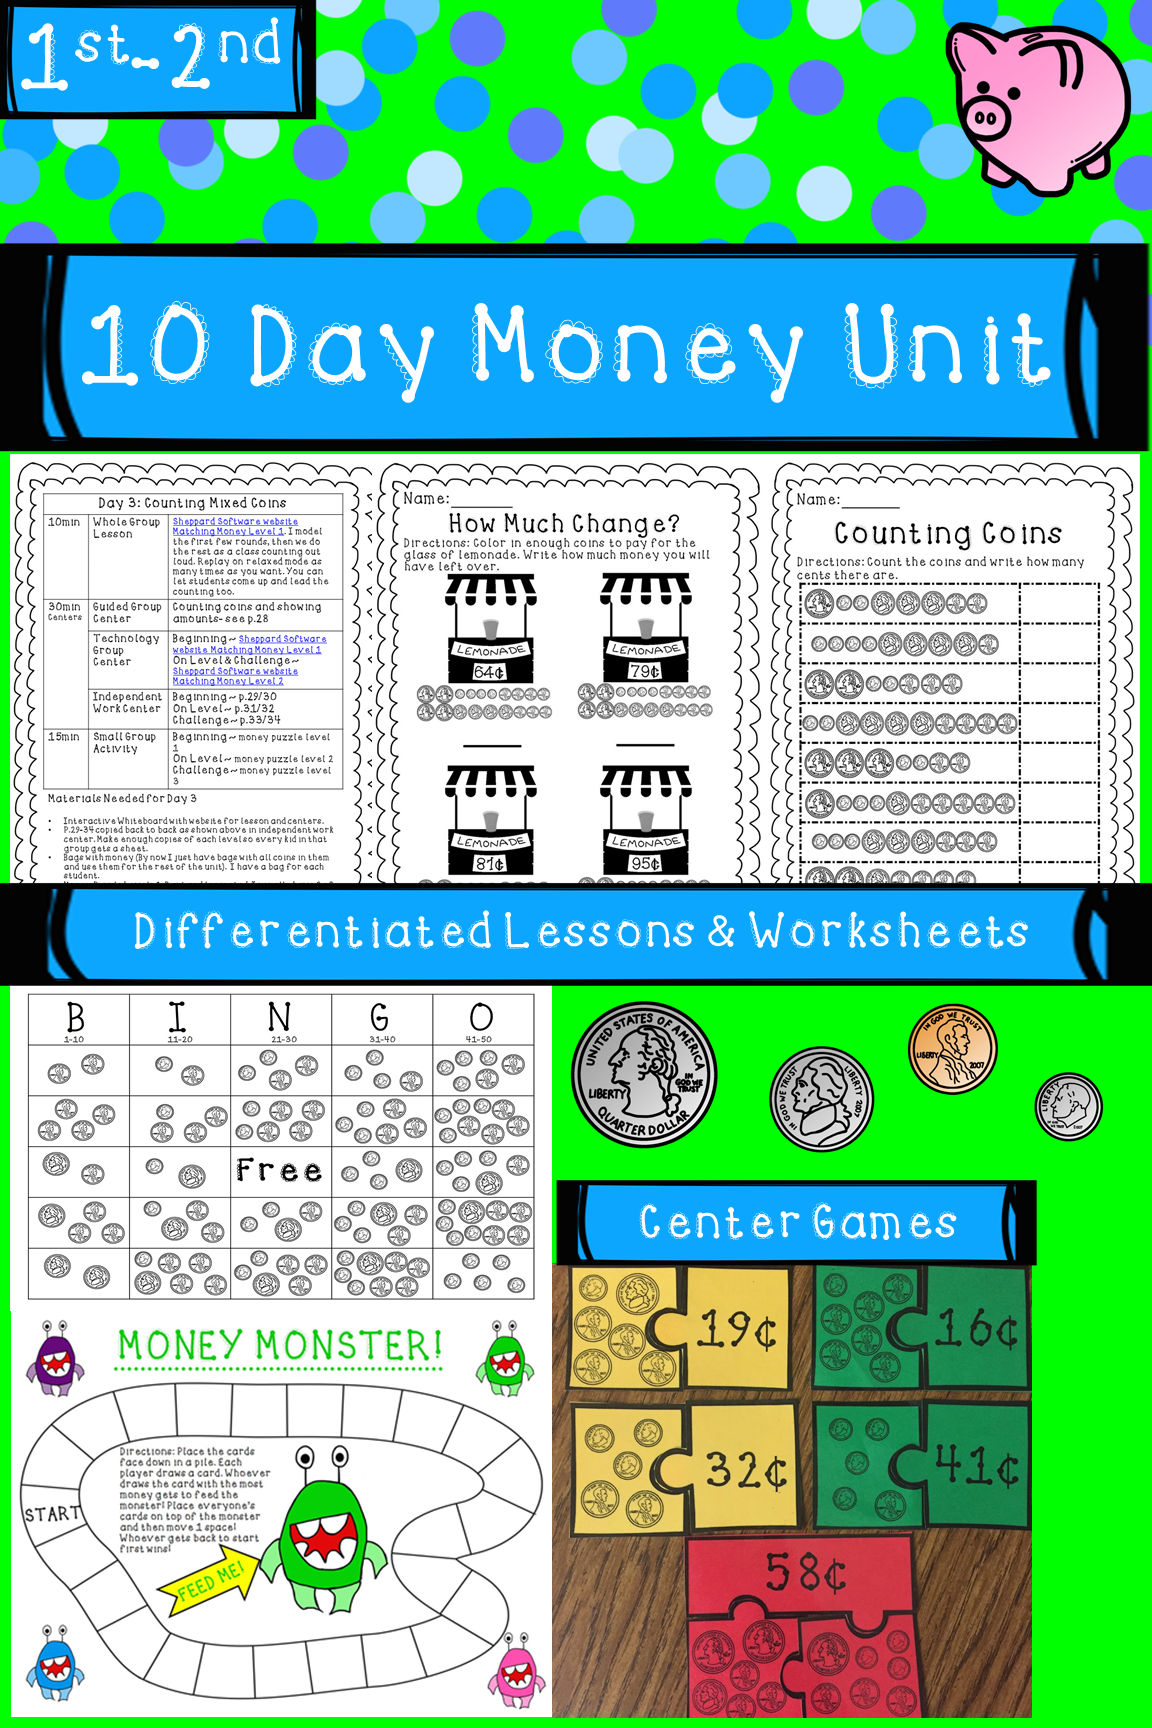 Money Unit Counting Coins Differentiated Lessons